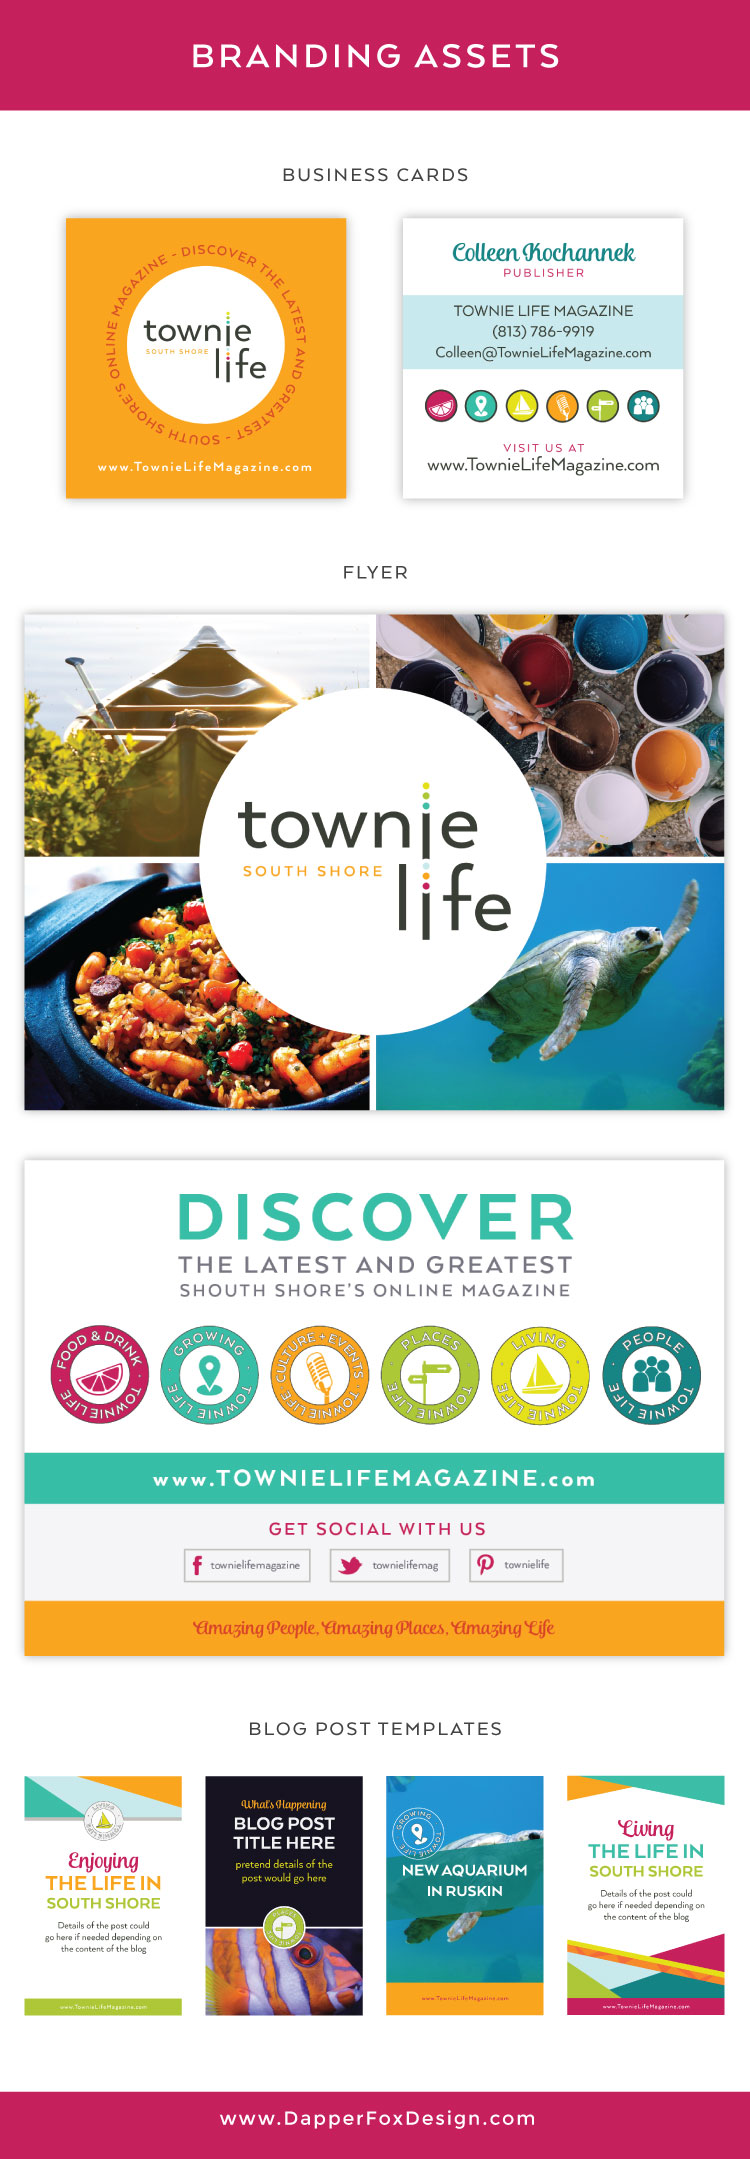 Business Cards, Flyer, Postcard and Blog Post Template - Logo Design and Branding Board for Townie Life Magazine and Lifestyle Blog of South Shore Florida - Logo, Blog and Website Design by Dapper Fox in Park City, Utah. Bright - Colorful - Modern - Tropical - Turquoise - Orange